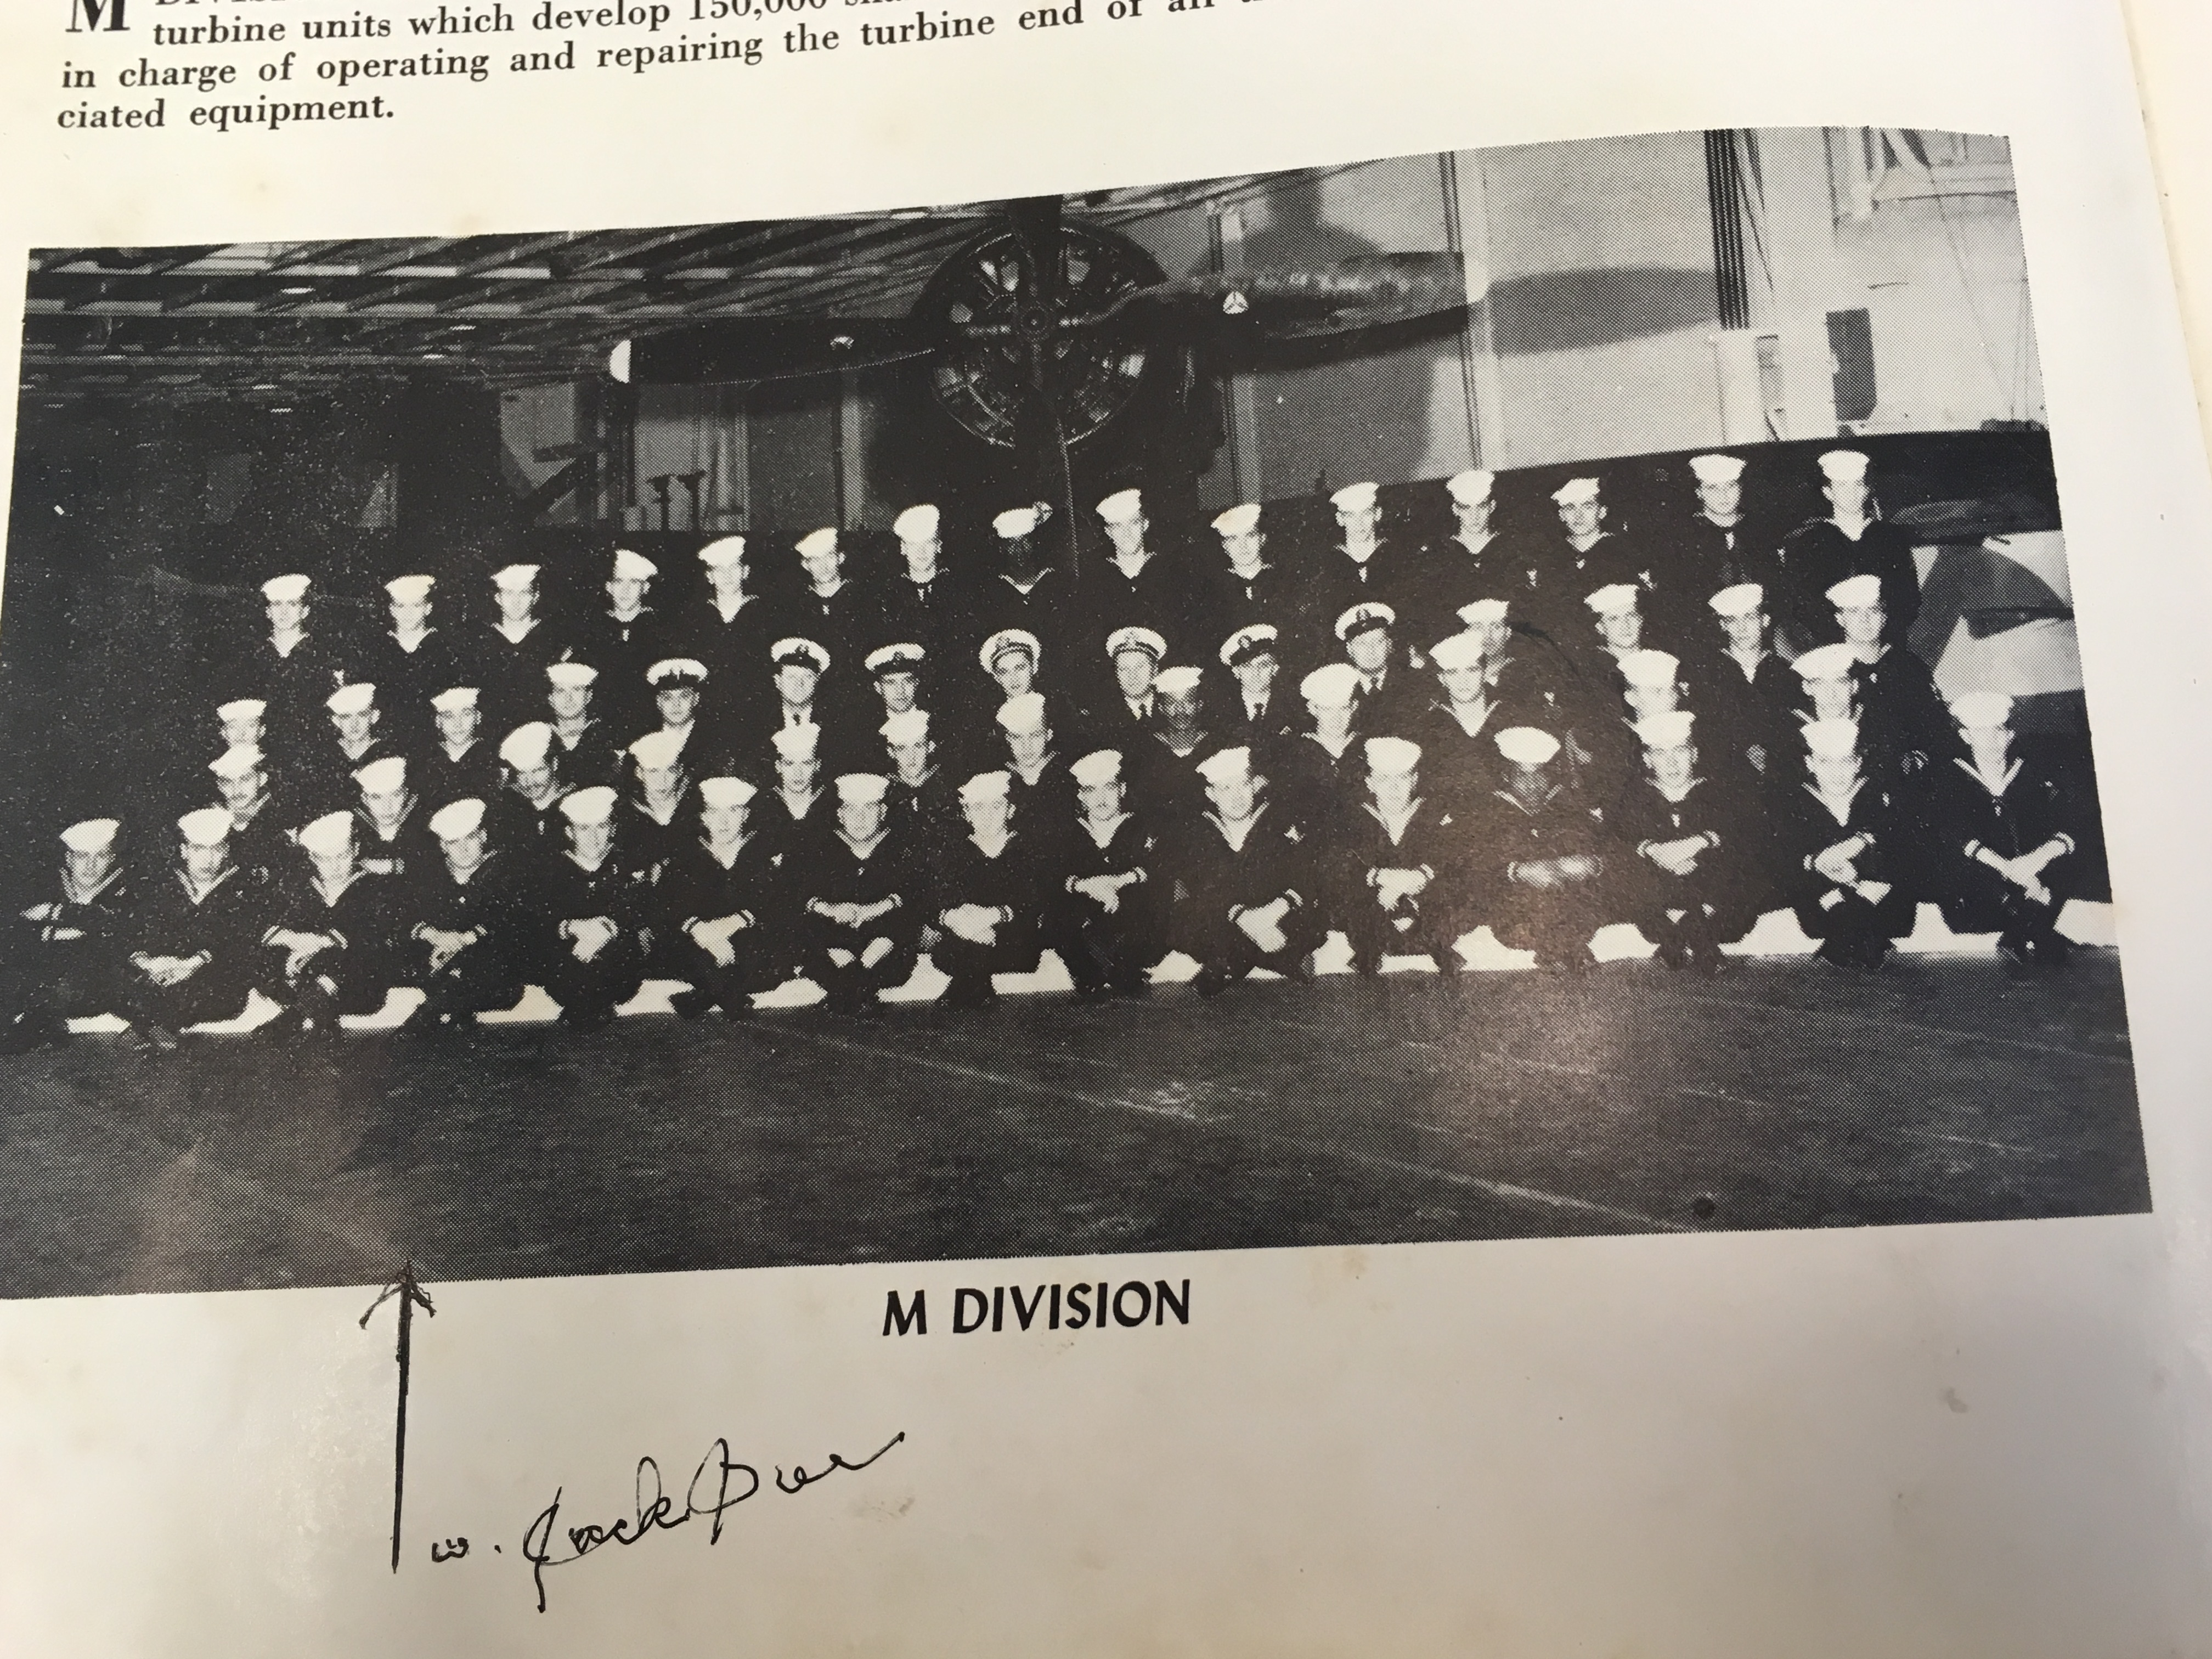 Photo from book of large group of sailors